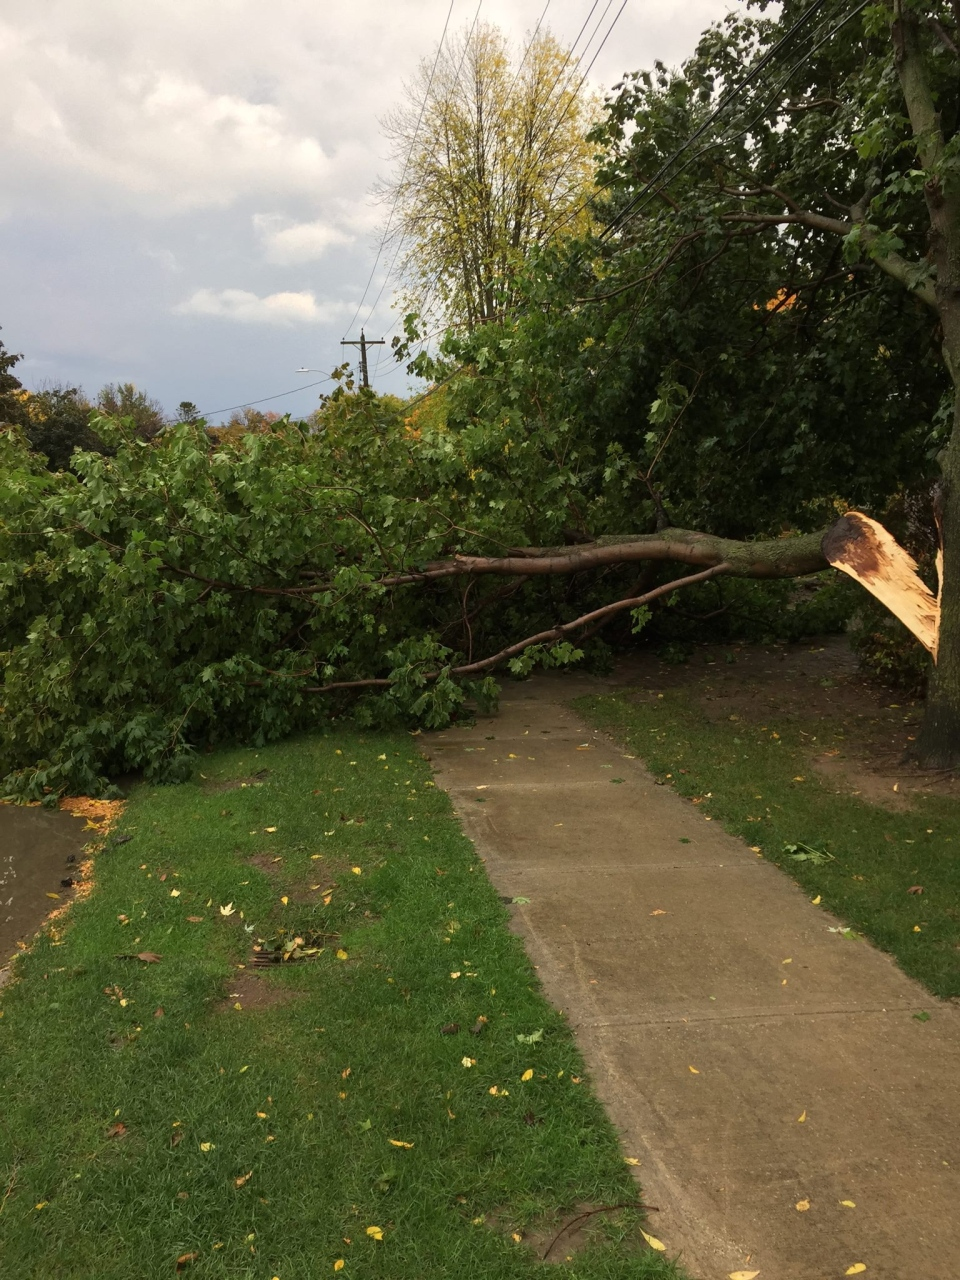 Severe weather brought down this tree in Collingwood, Ont. on Monday, Oct. 17, 2016. (Dean Sears/ Facebook)